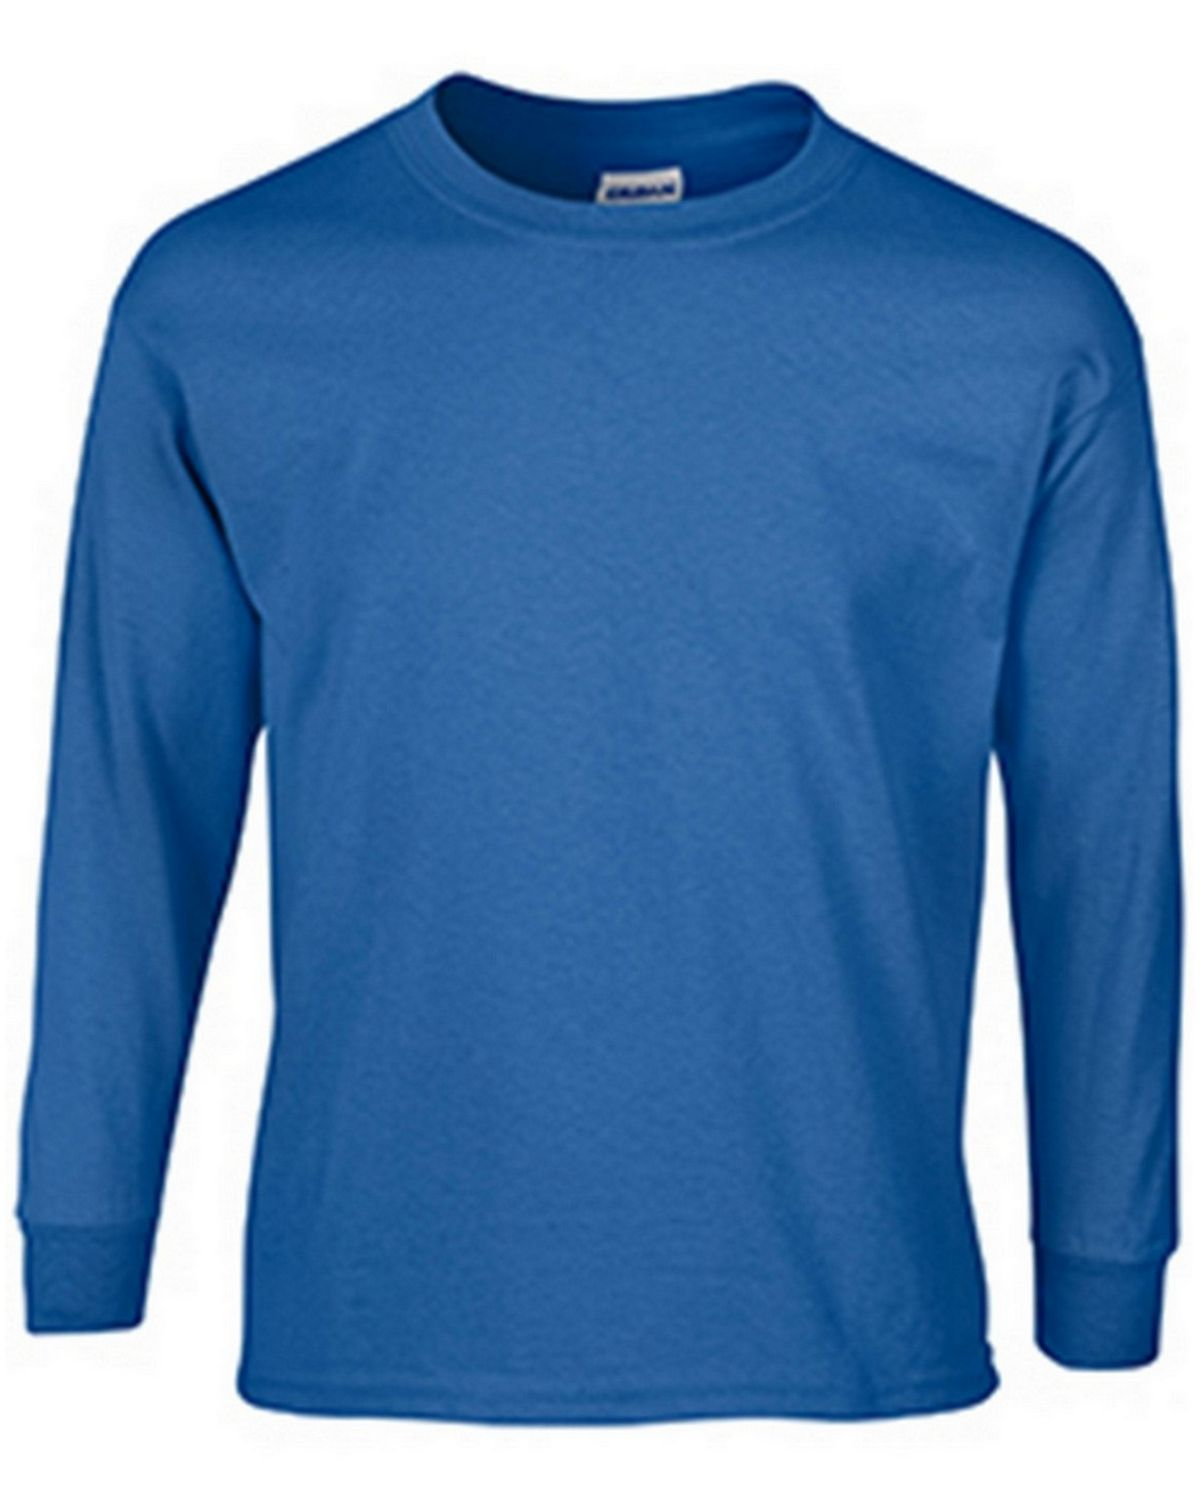 Gildan G2400B Youth Long Sleeve Tee - Royal - S G2400B